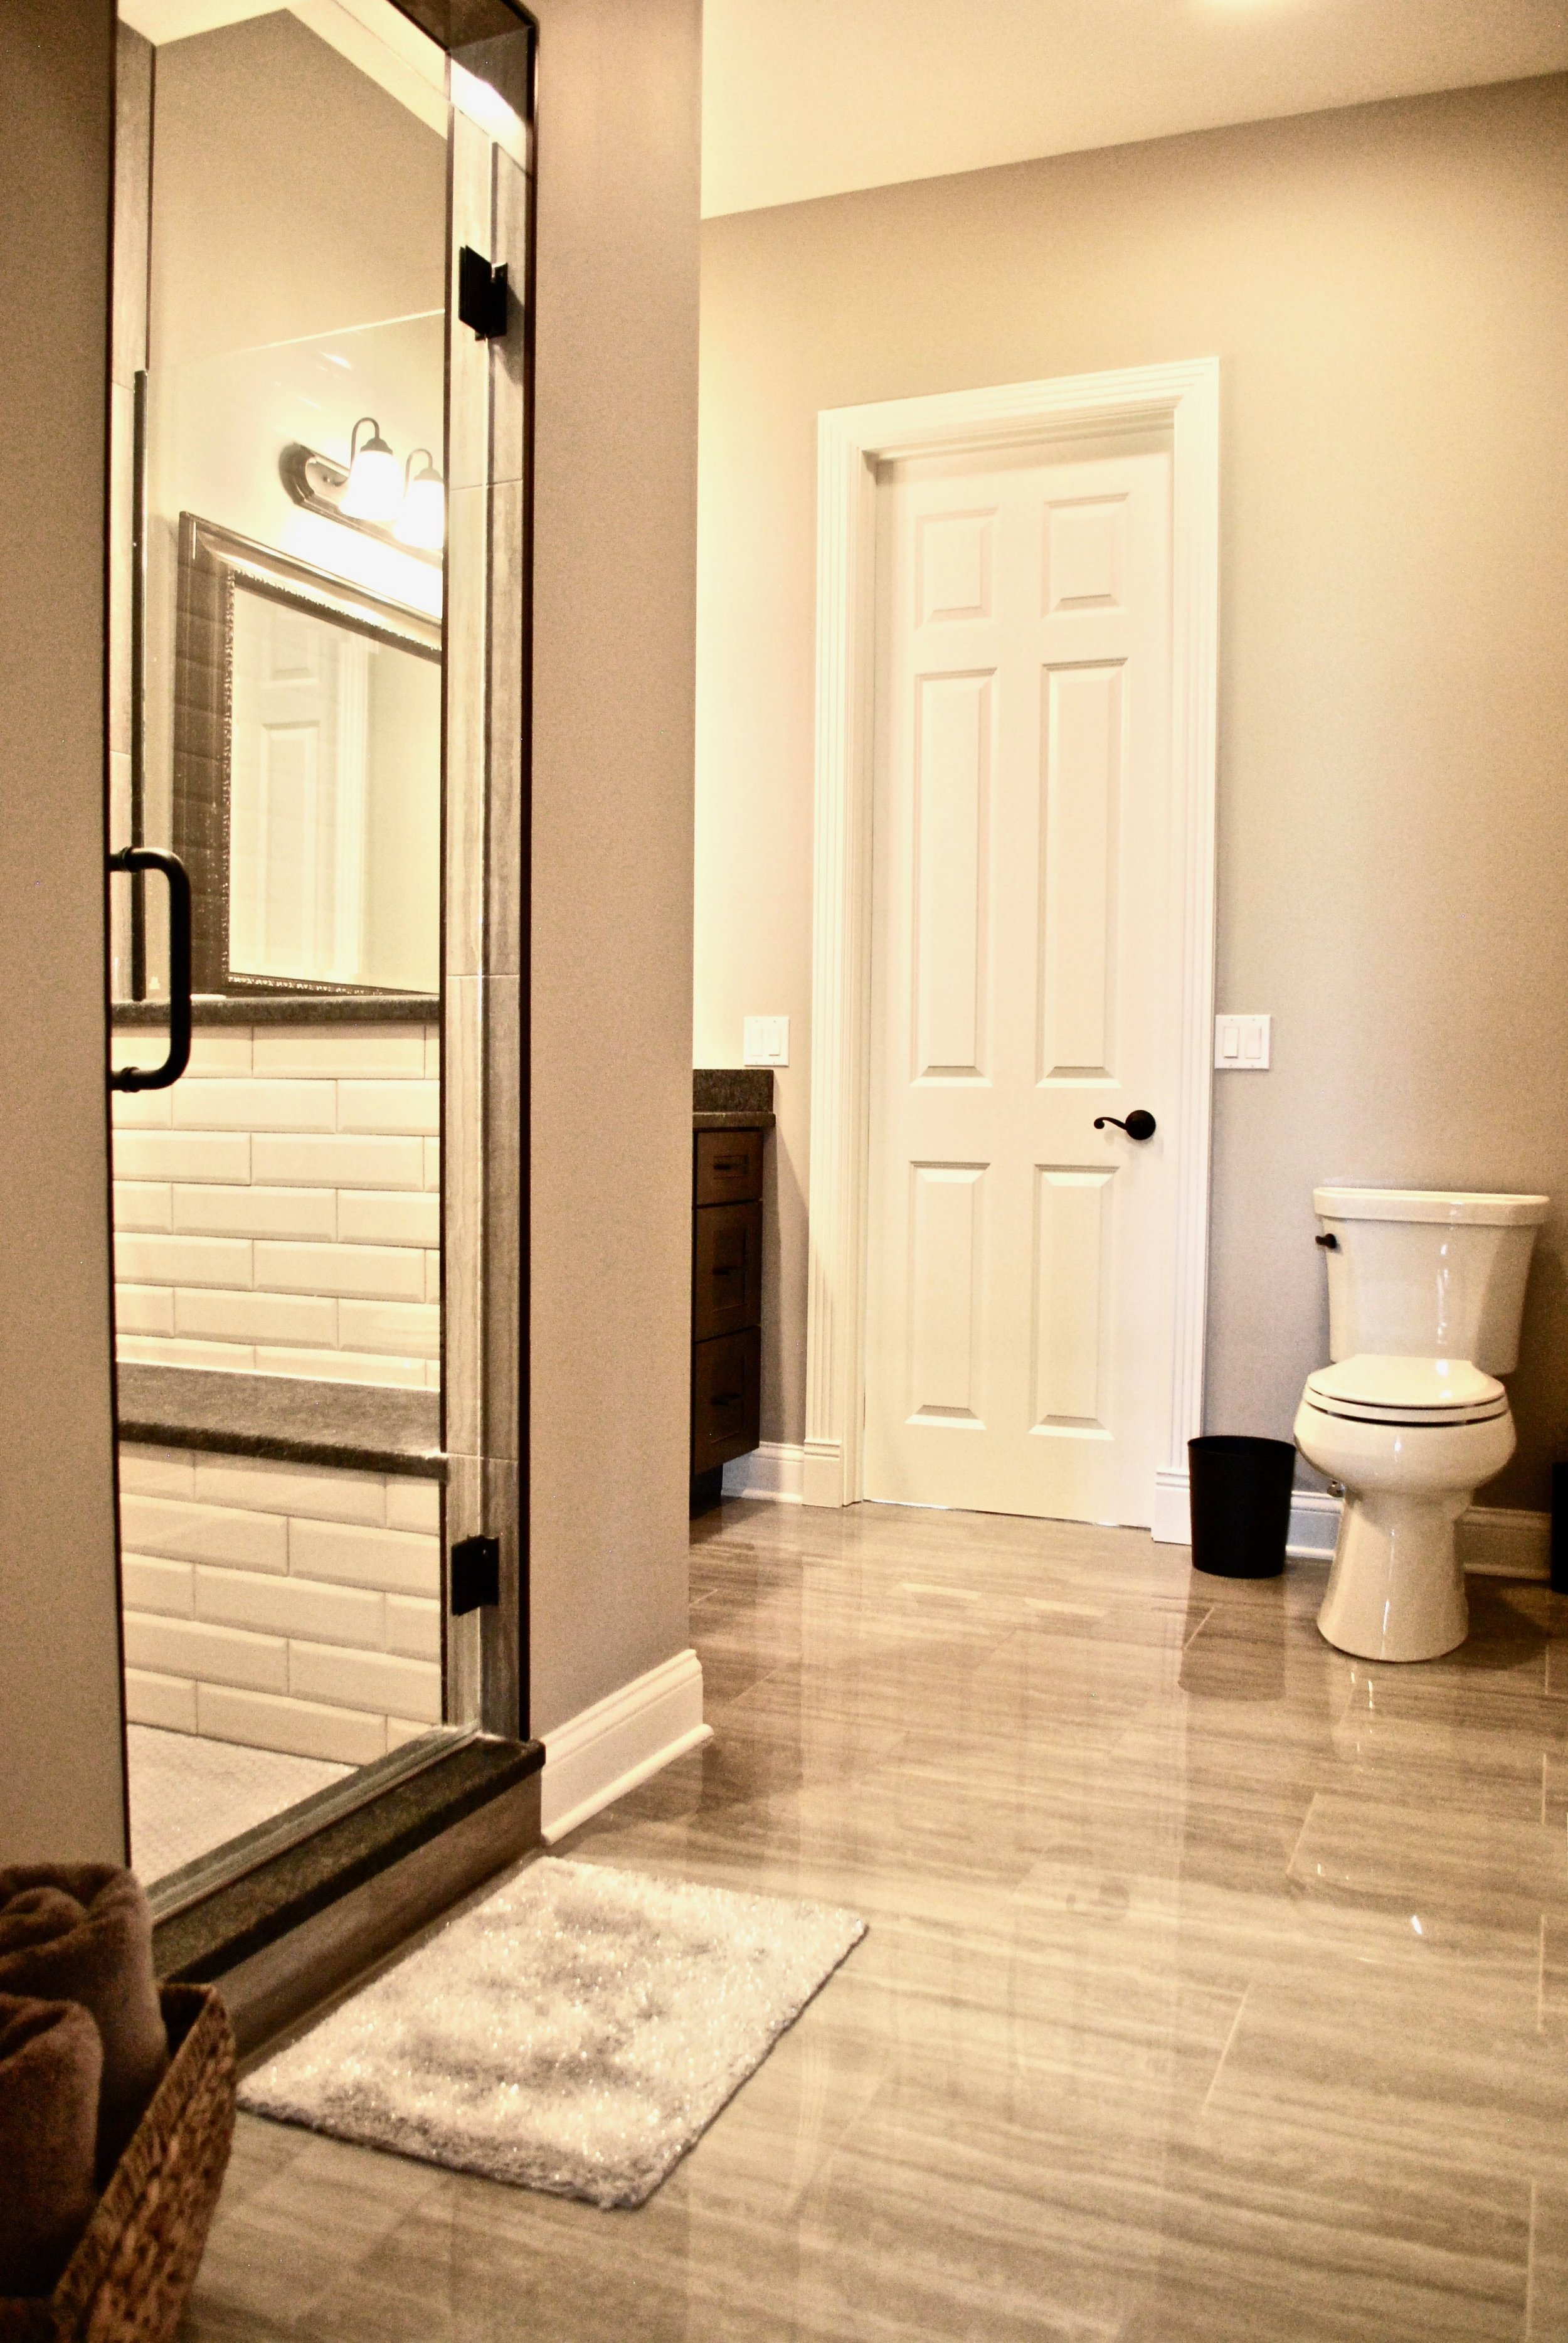 Transitional Bathroom Design in St. Charles & Naperville Illinois. Looking for a bathroom contractor? looking to add an addition to your current house for first floor master suite? Call Southampton for all your remodeling & Renovation needs!